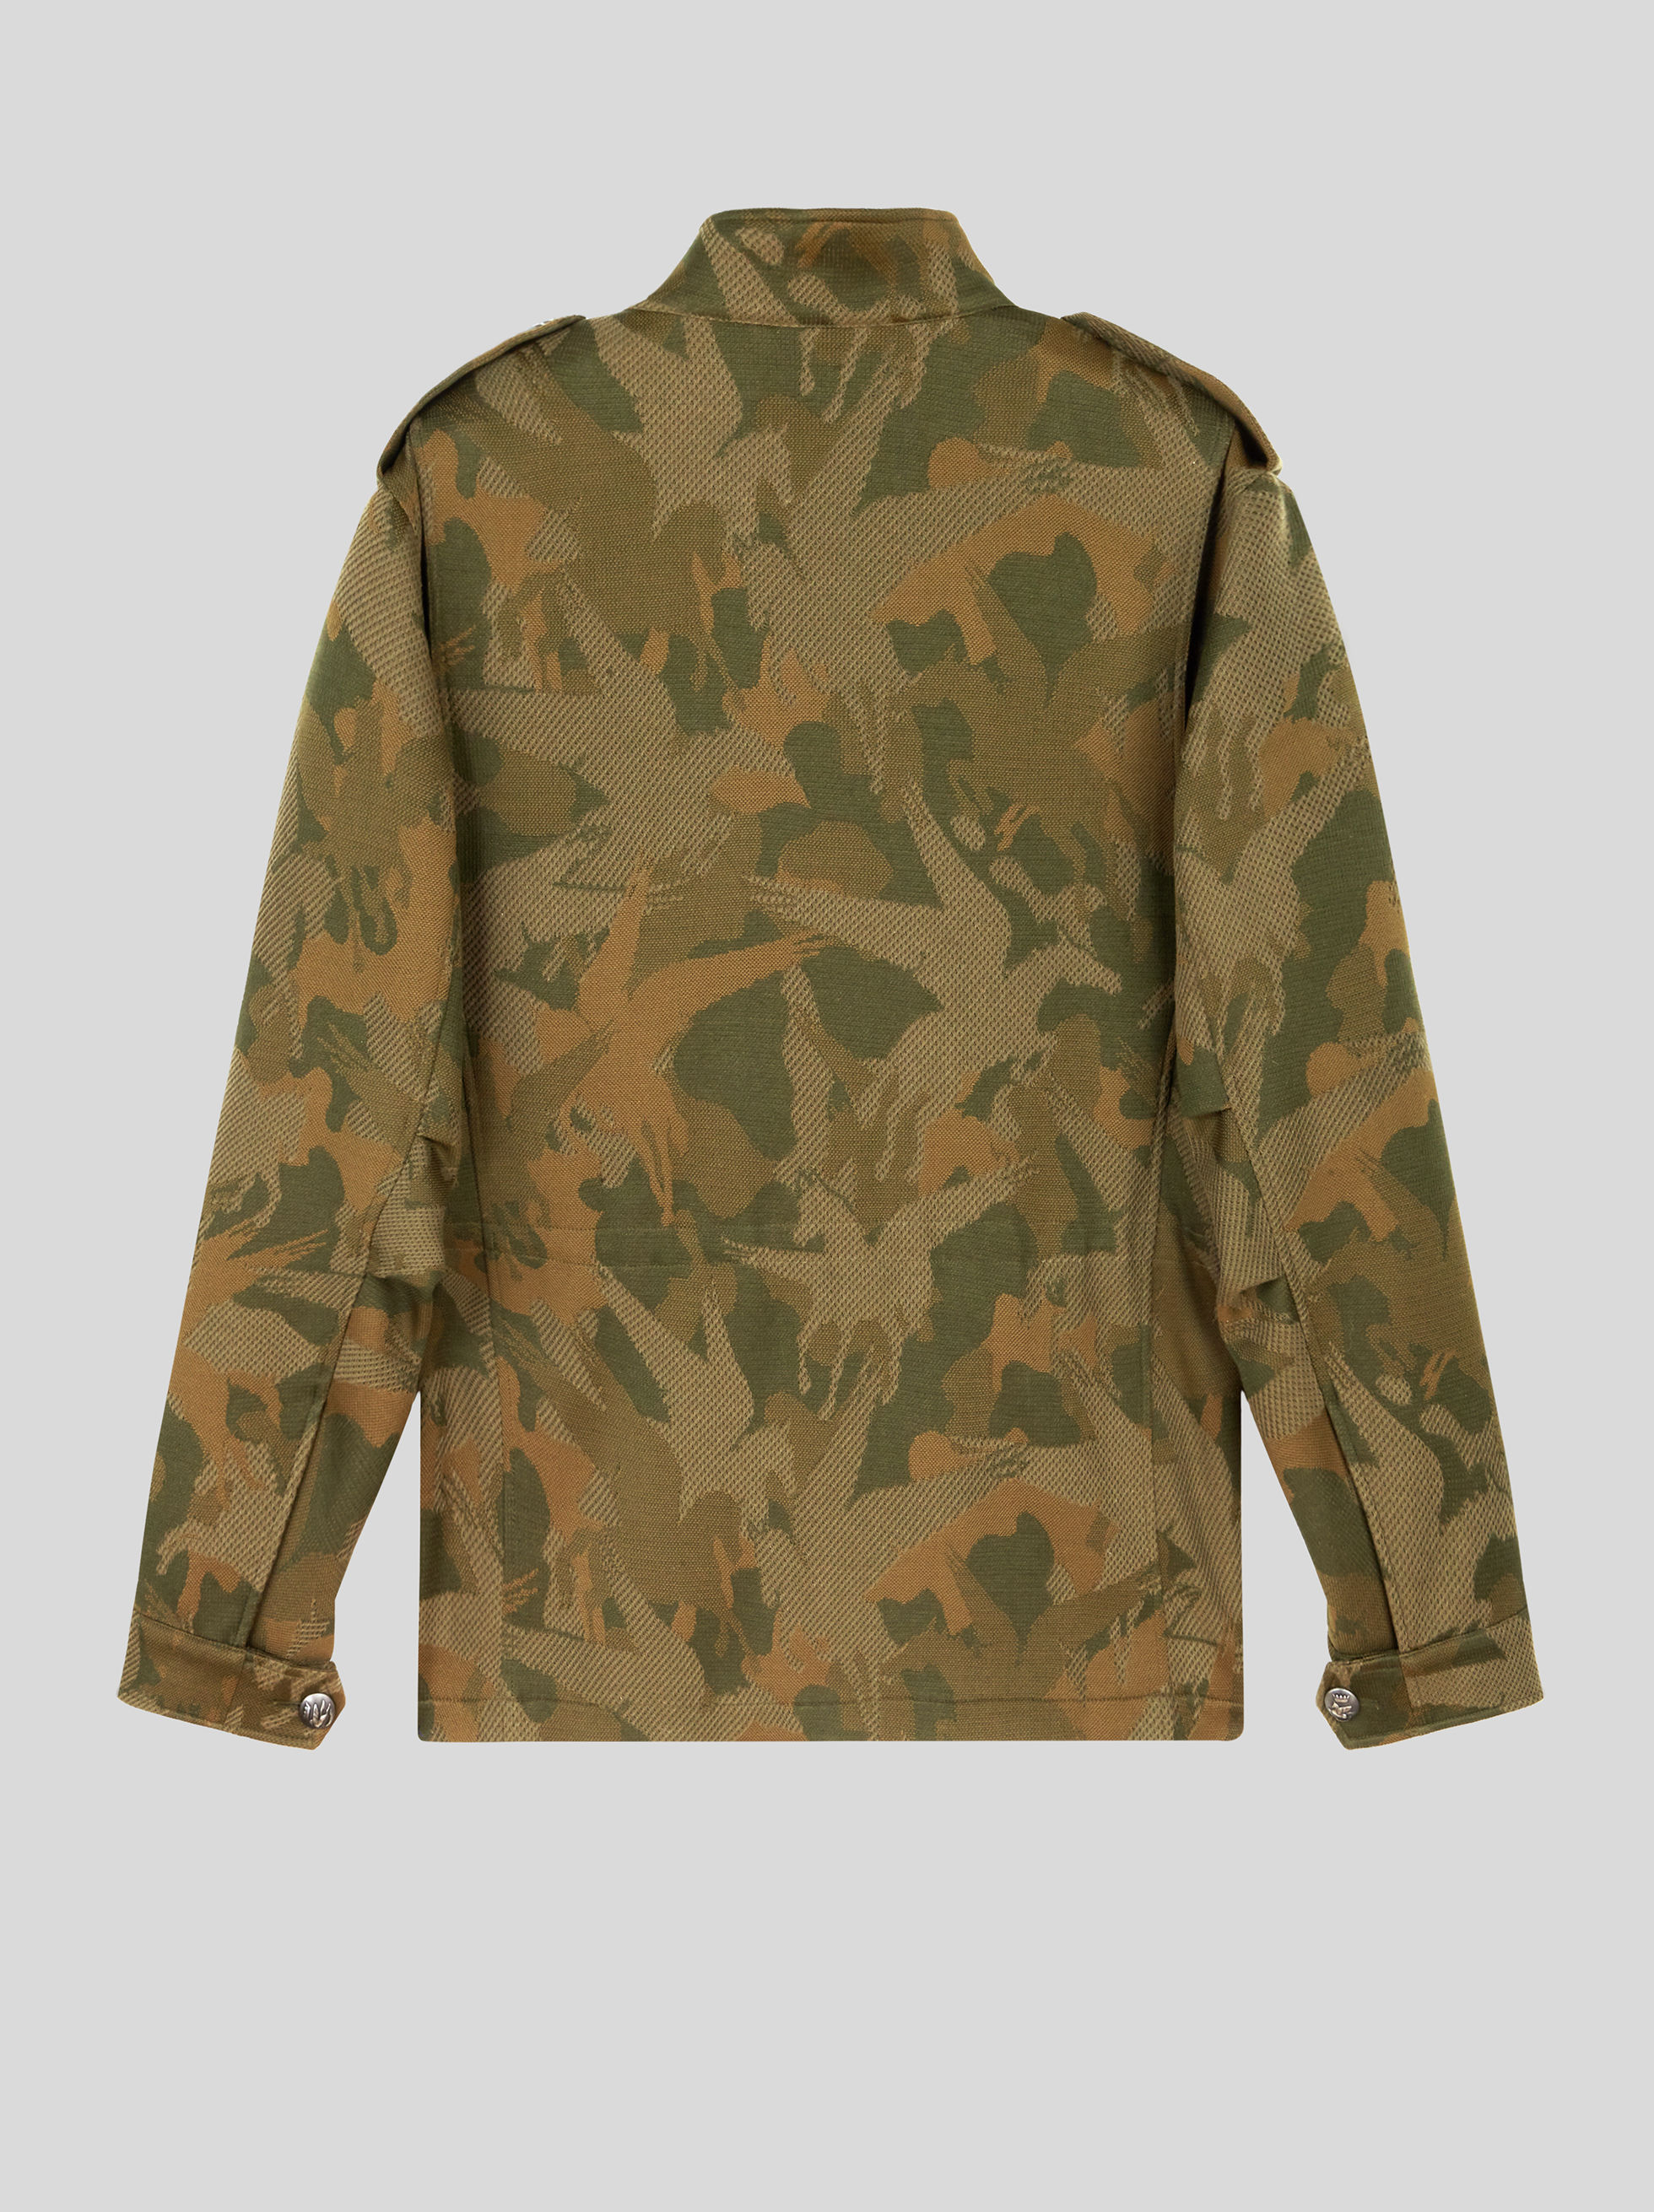 JERSEY JACQUARD SAFARI JACKET